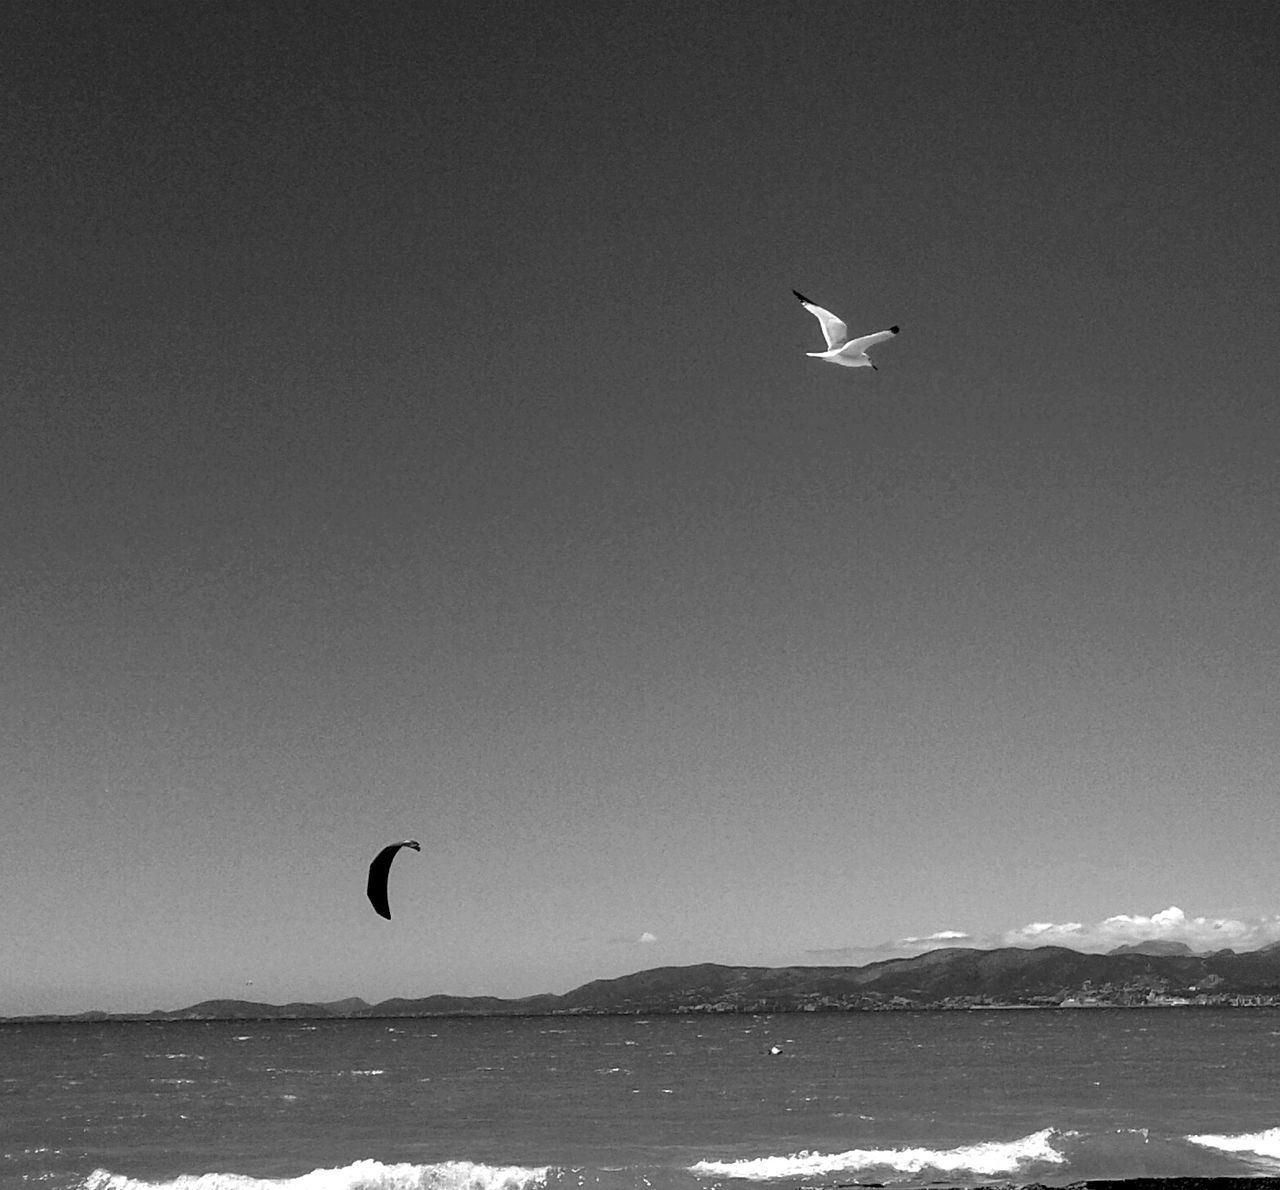 Kite And Bird Flying Over Sea